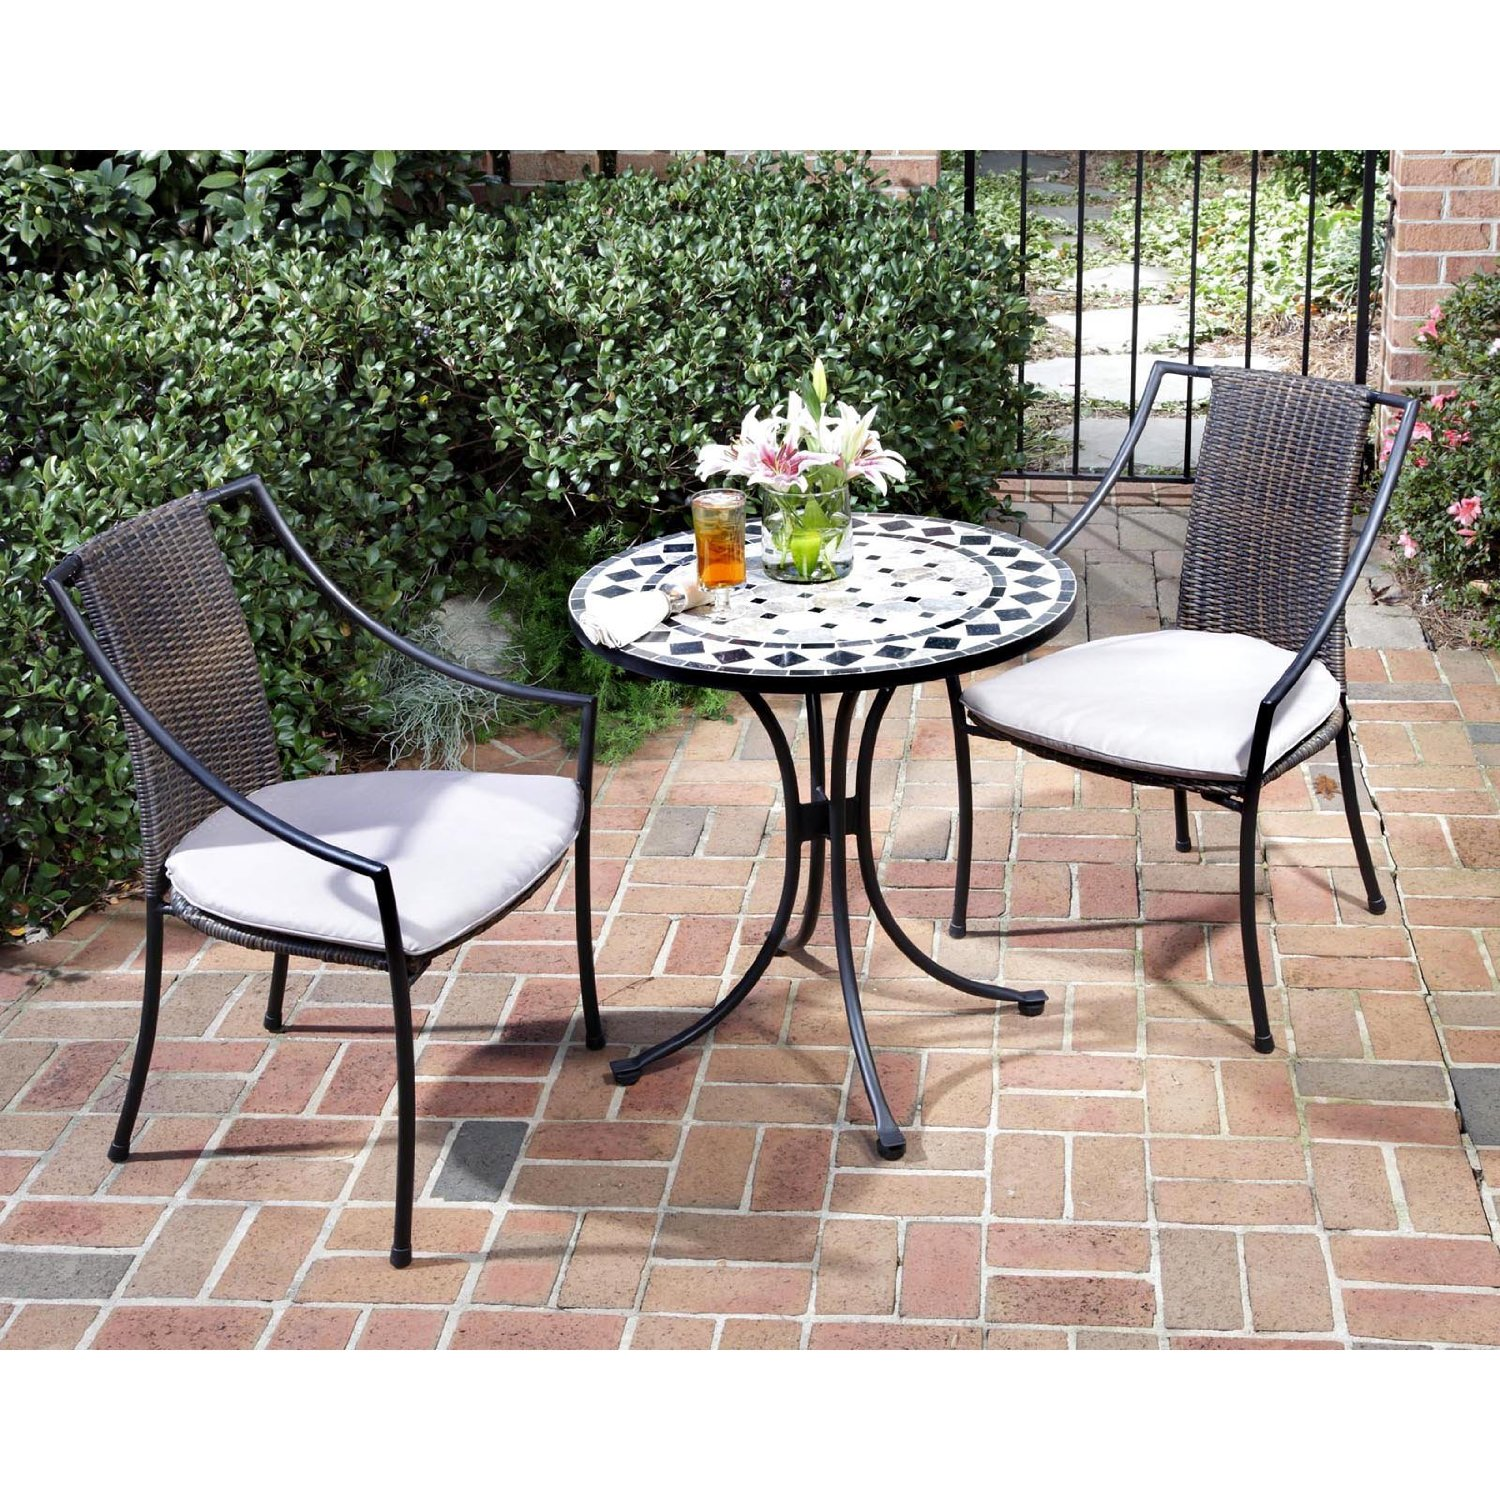 tile mosaic bistro table with white top and black legs plus double chairs with white seat for patio furniture ideas